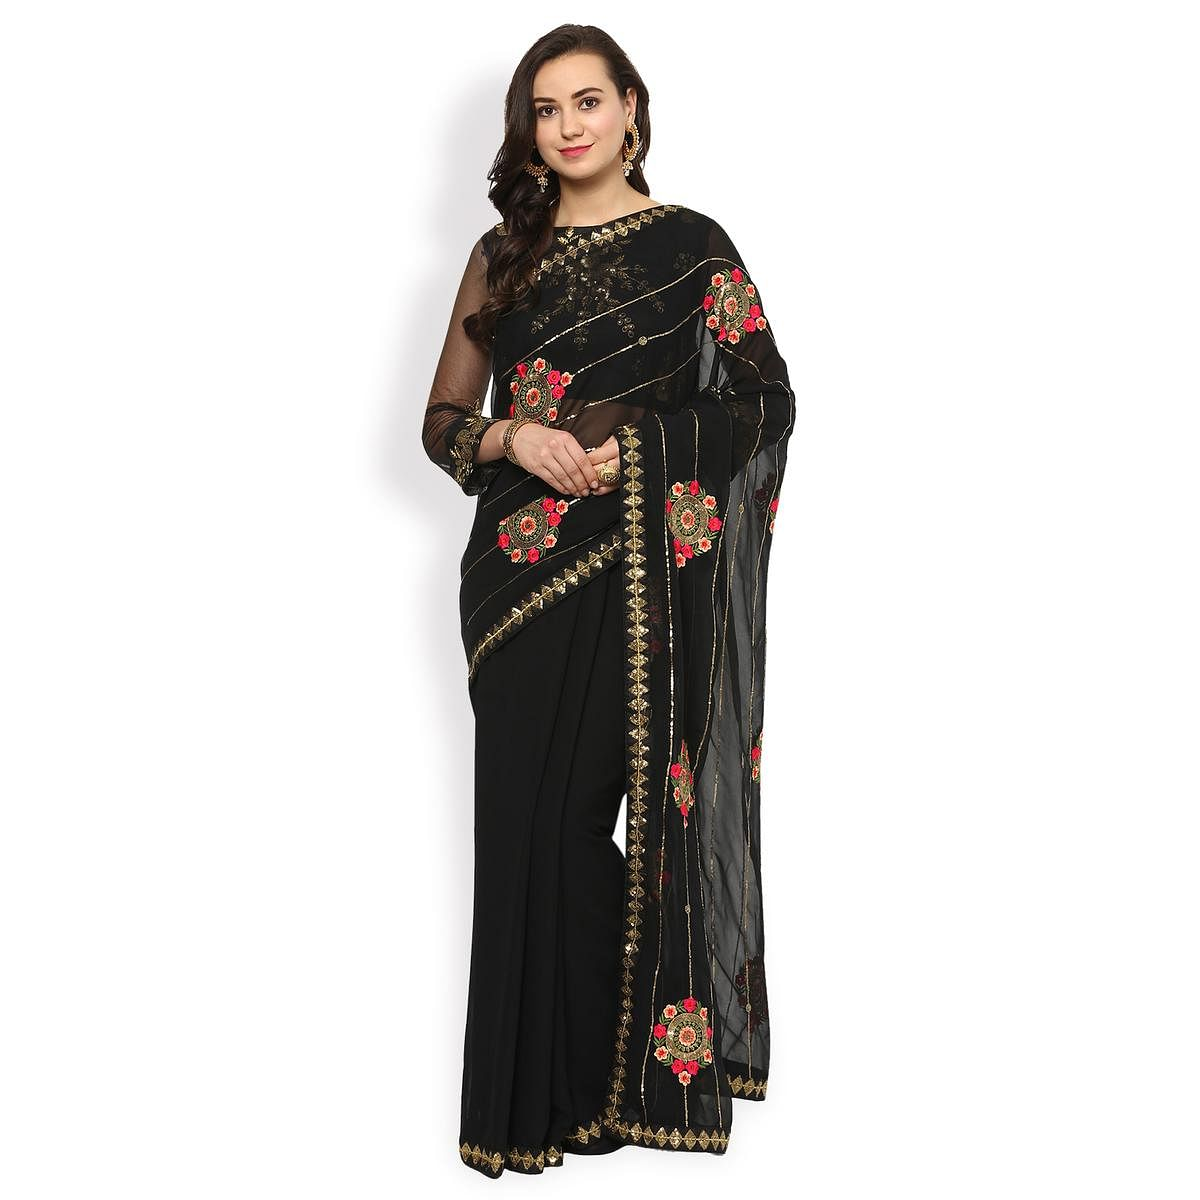 Mesmerising Black Partywear Floral Embroidered Georgette Saree